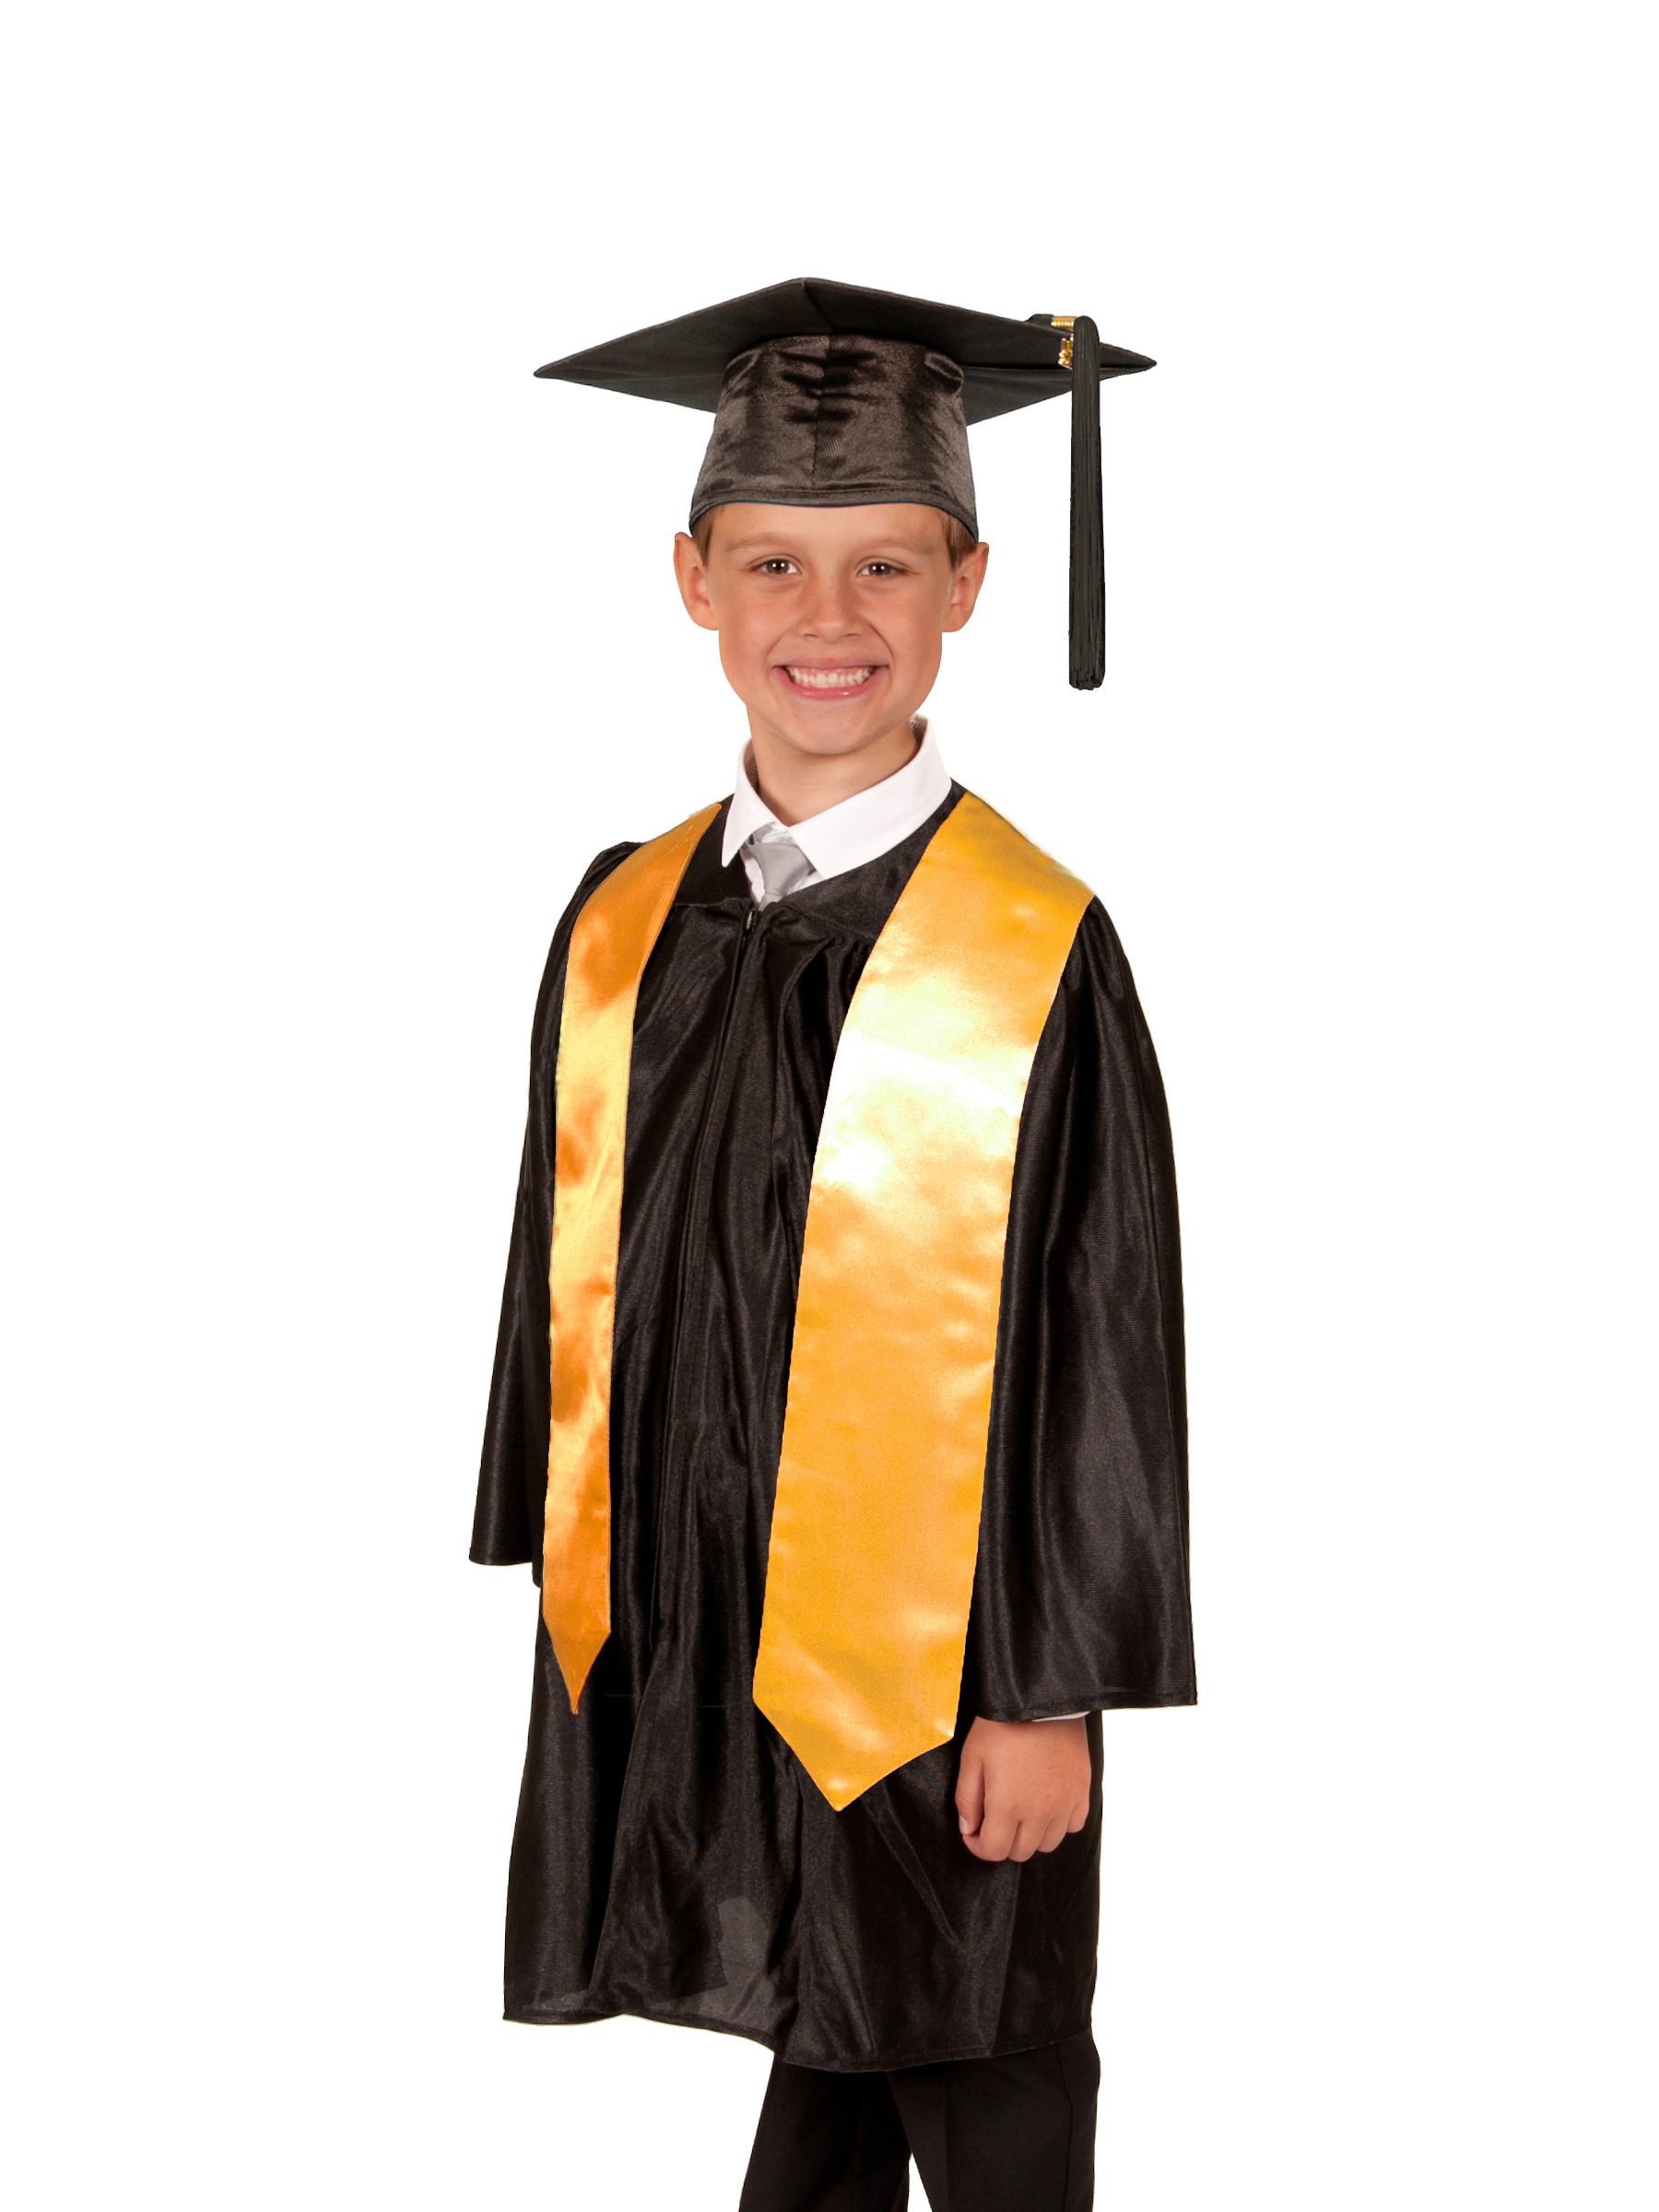 Shiny Primary School Graduation Gown Cap And Stole